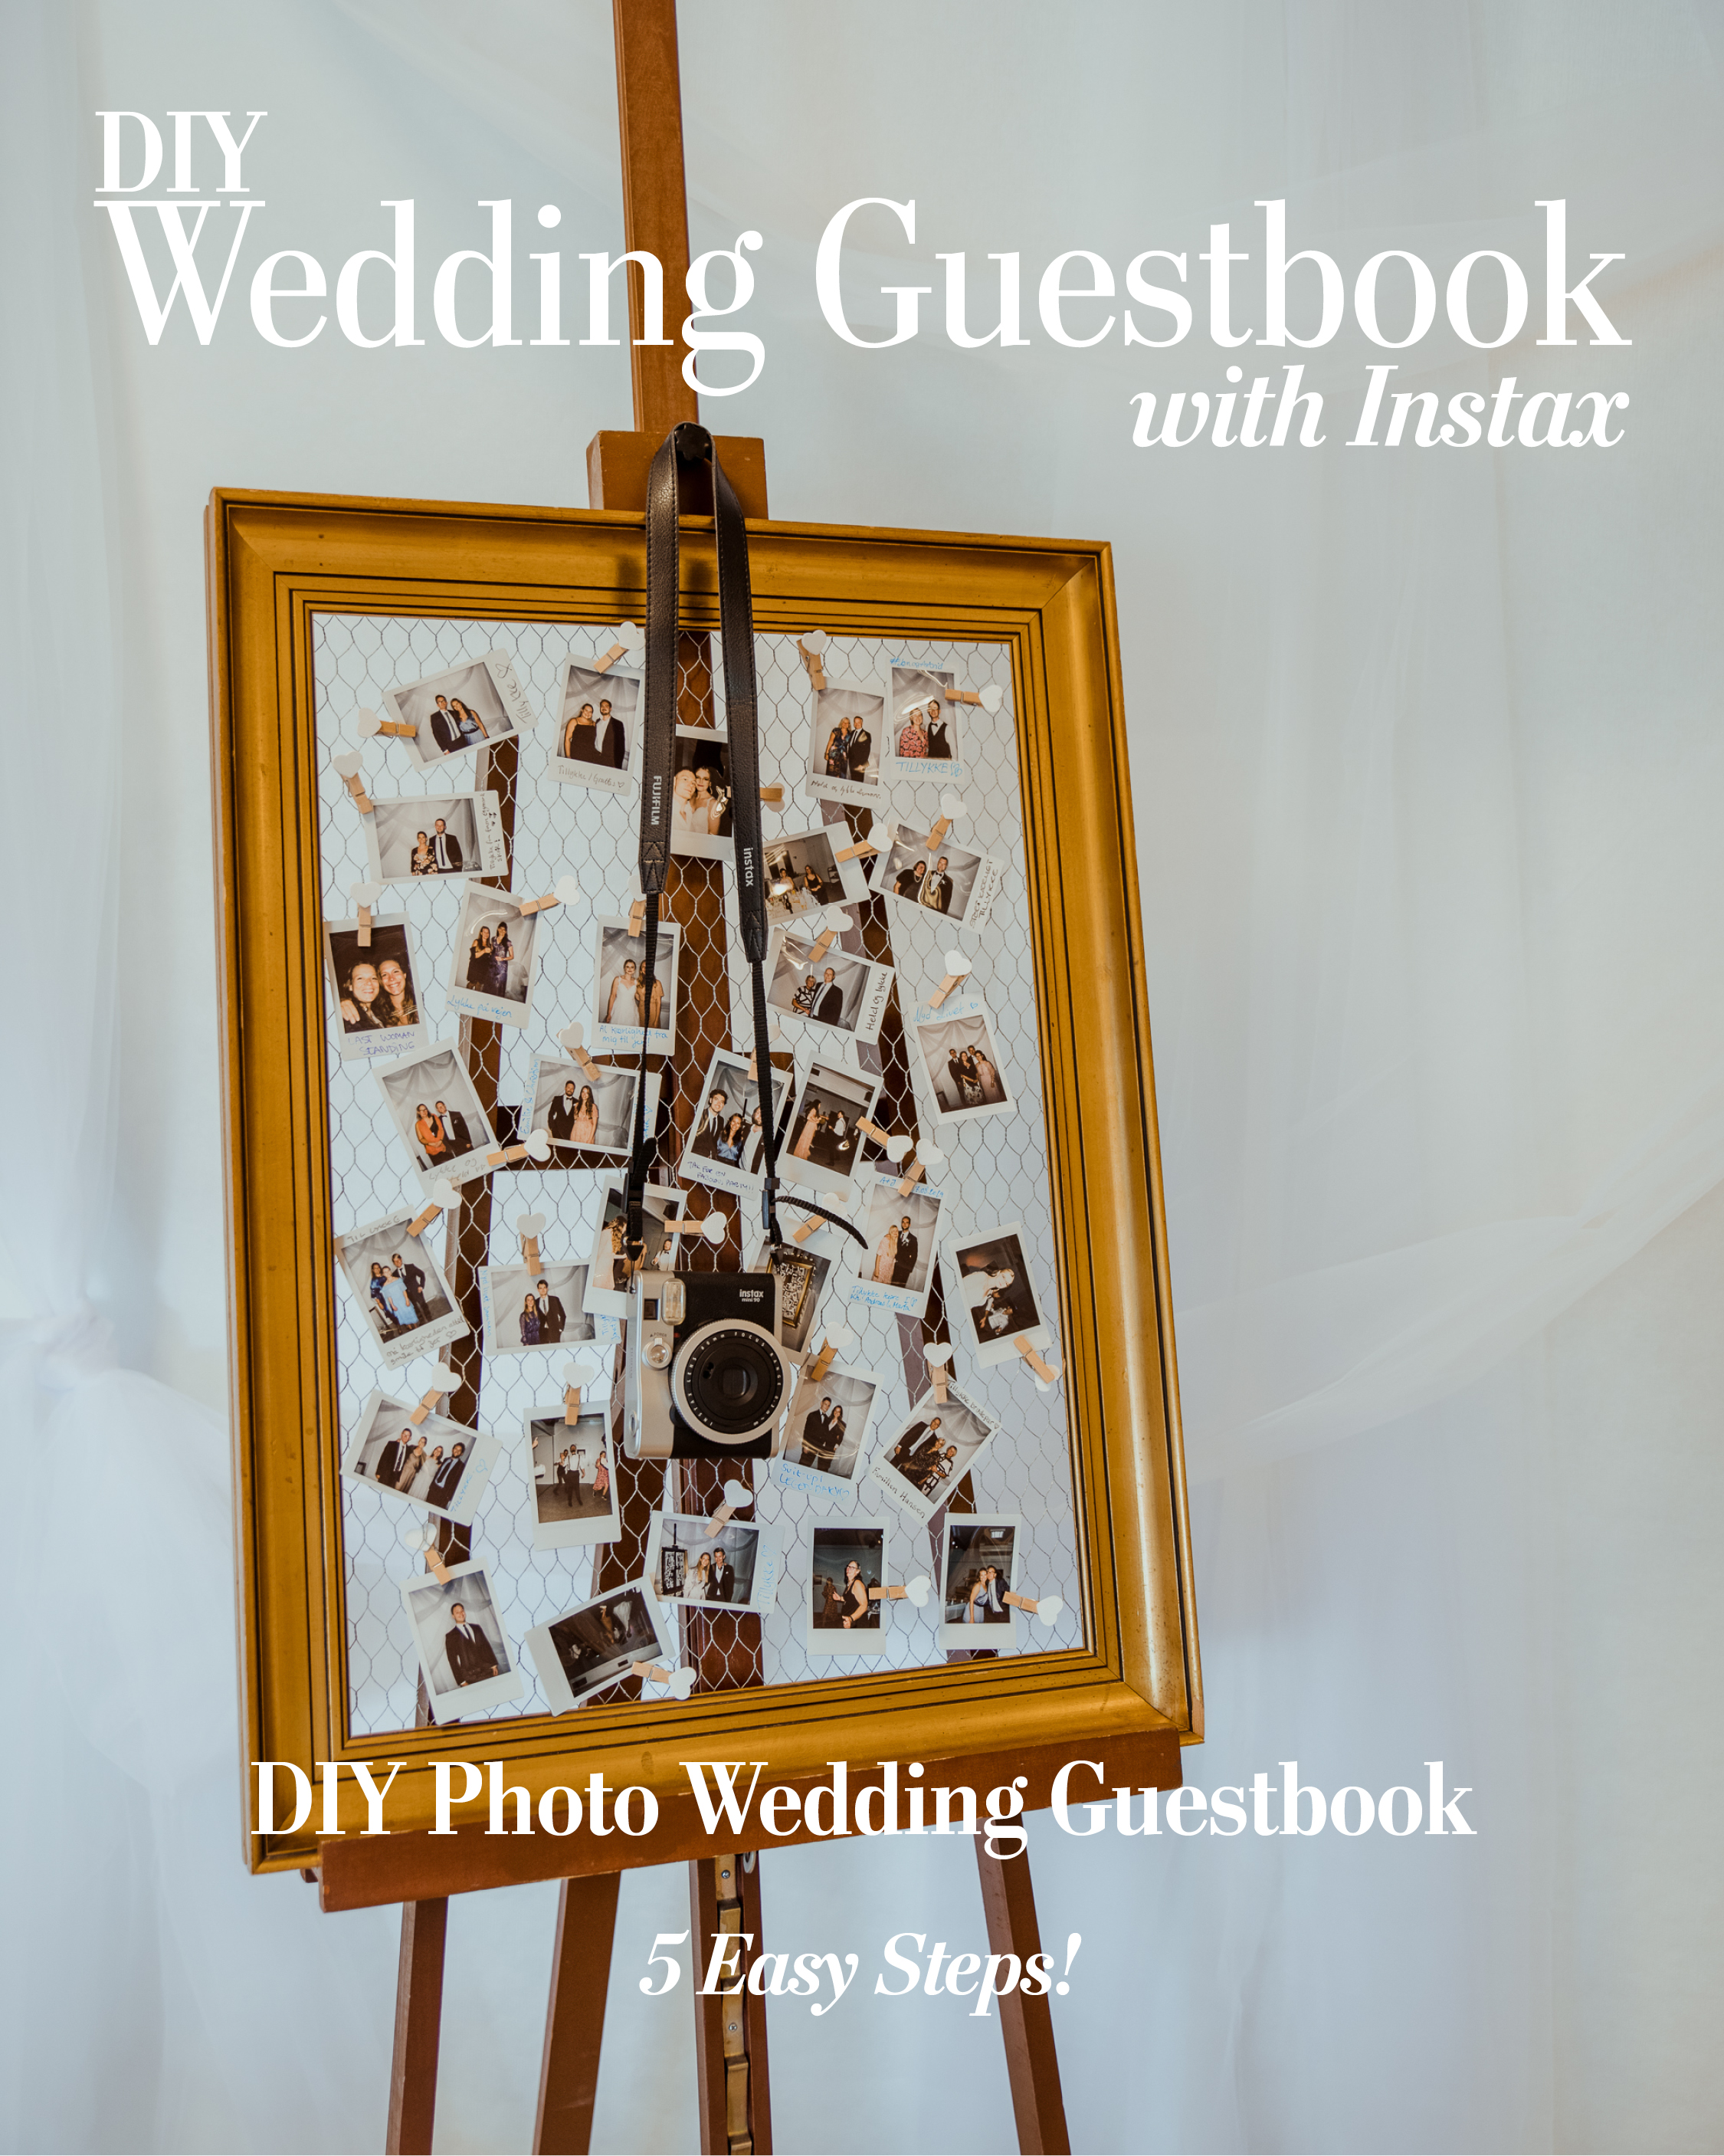 Instant photo wedding guestbook made from antique frame and Instax photos